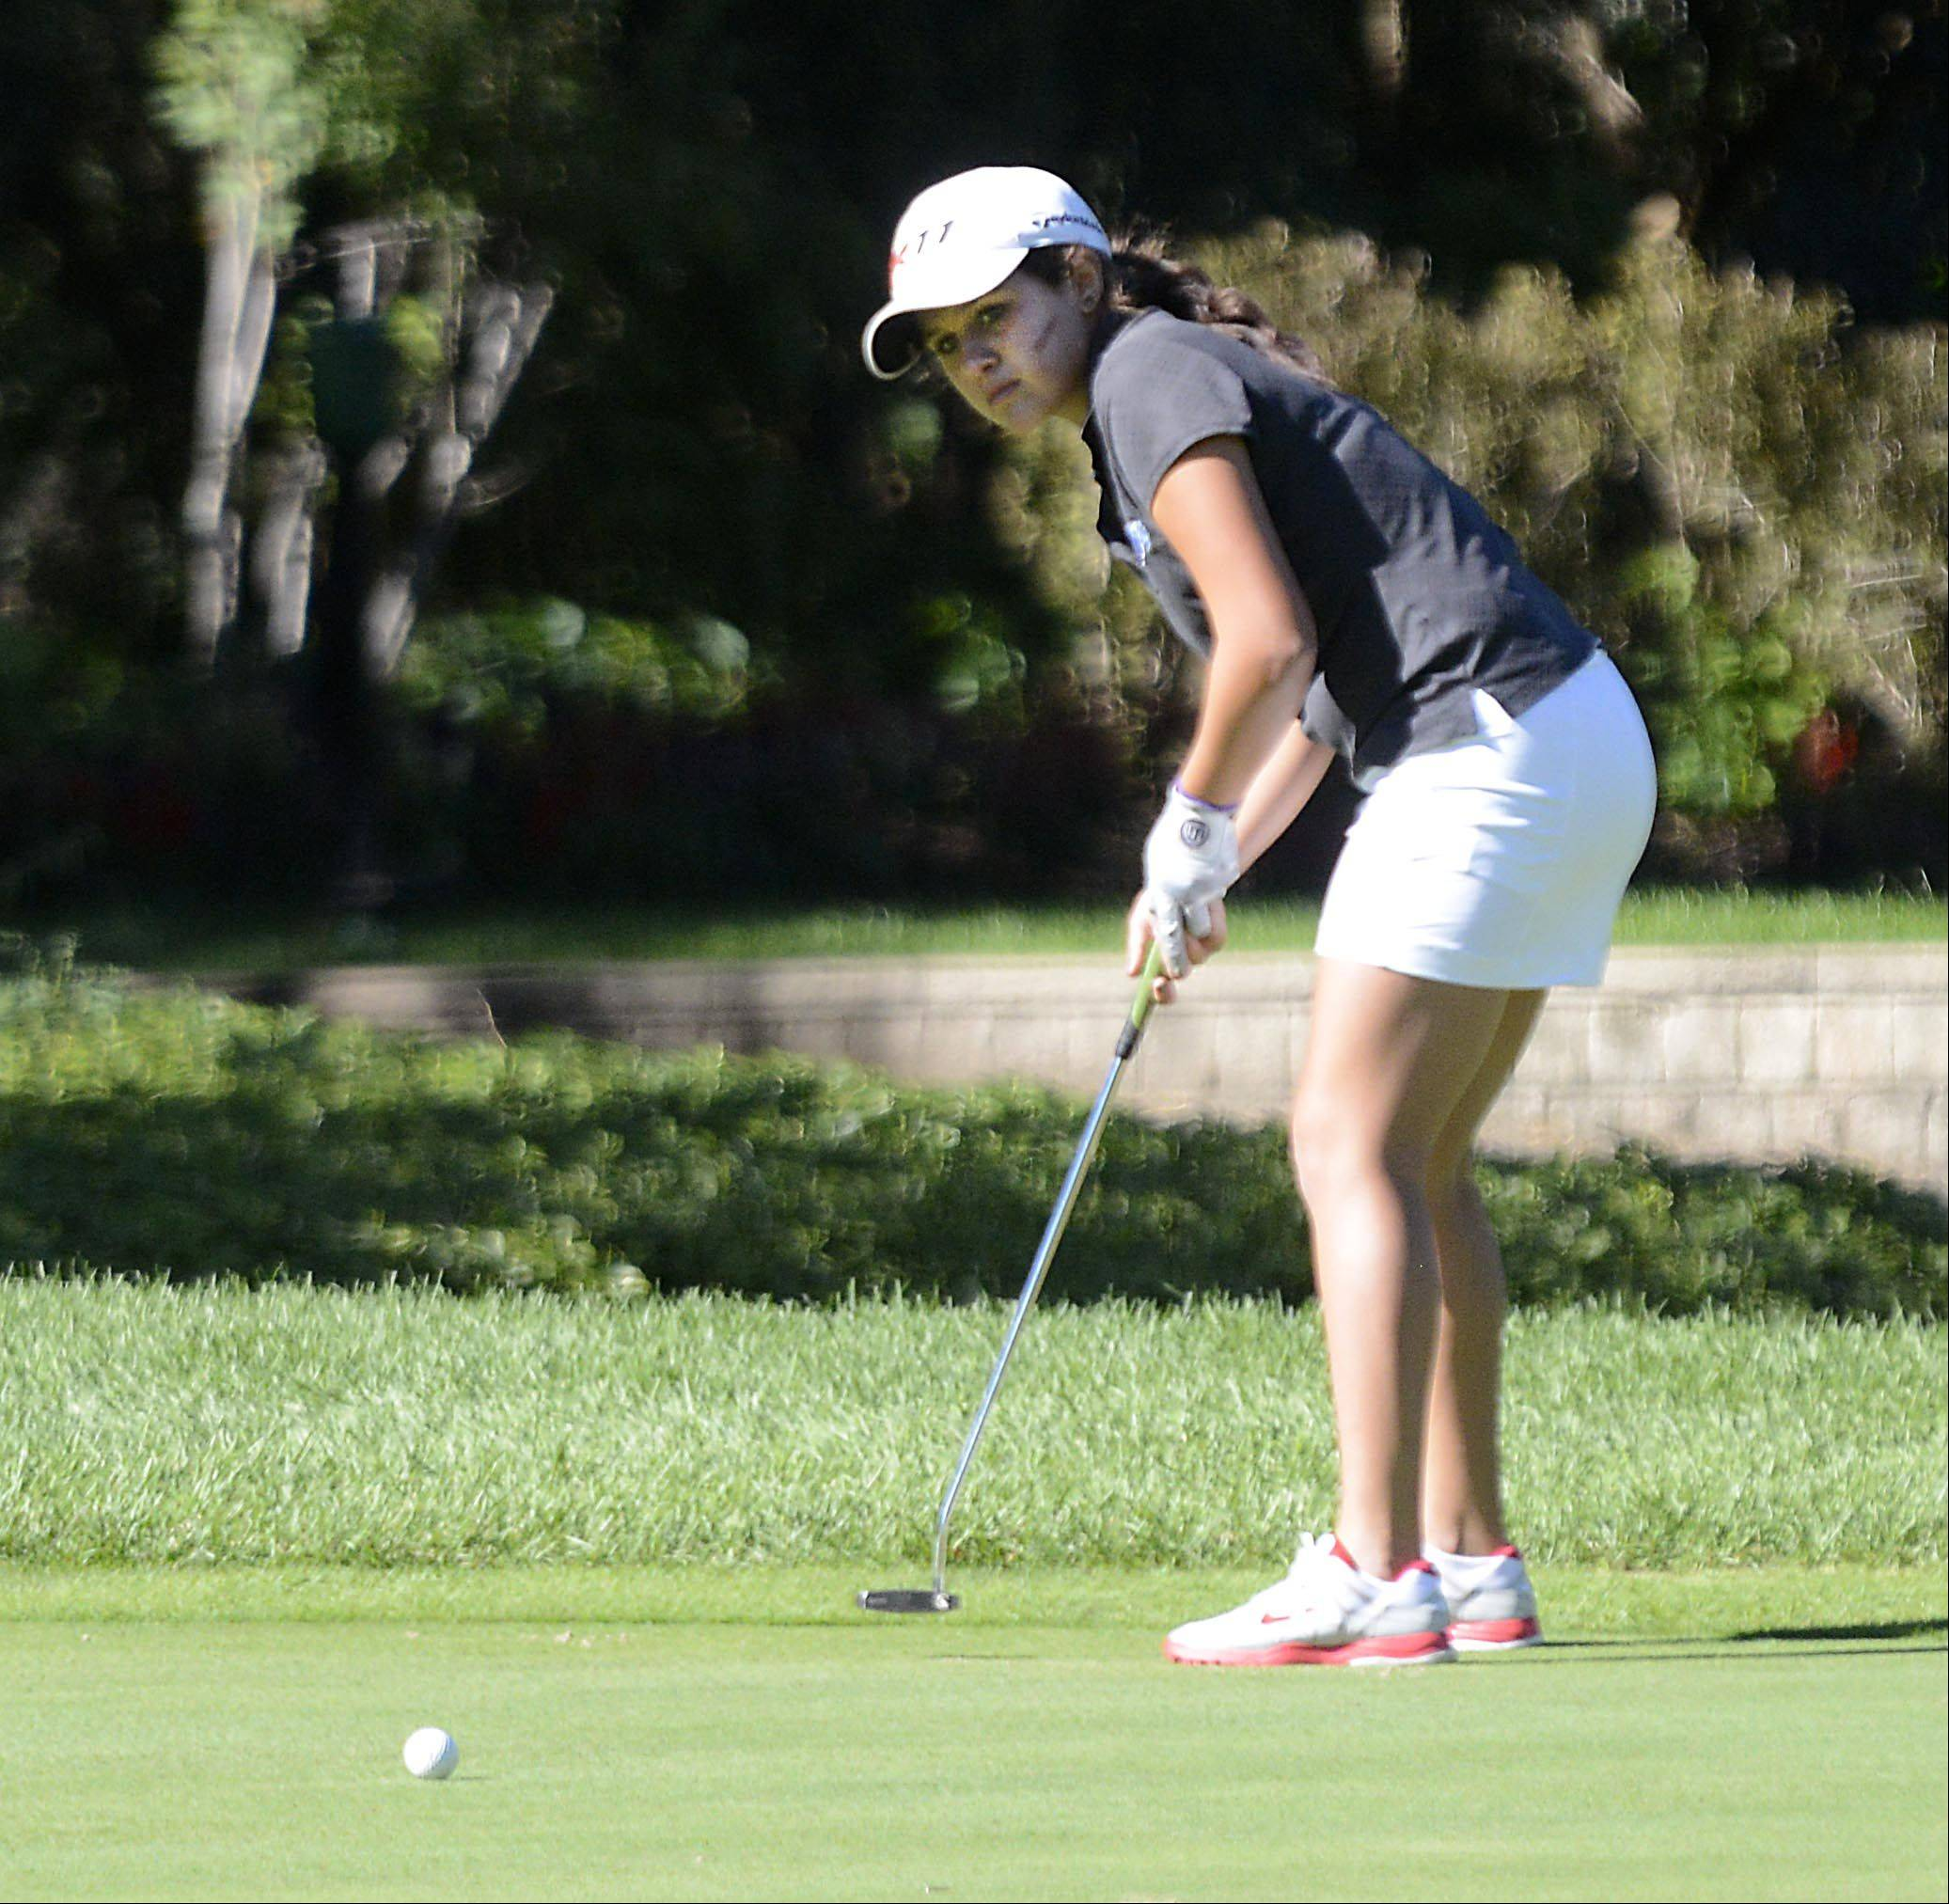 St. Charles North's Gianna Furrie watches her long putt on No. 8 Monday at the Elgin Country Club girls golf invitational. Furrie won the individual title with a 3-over par 38.